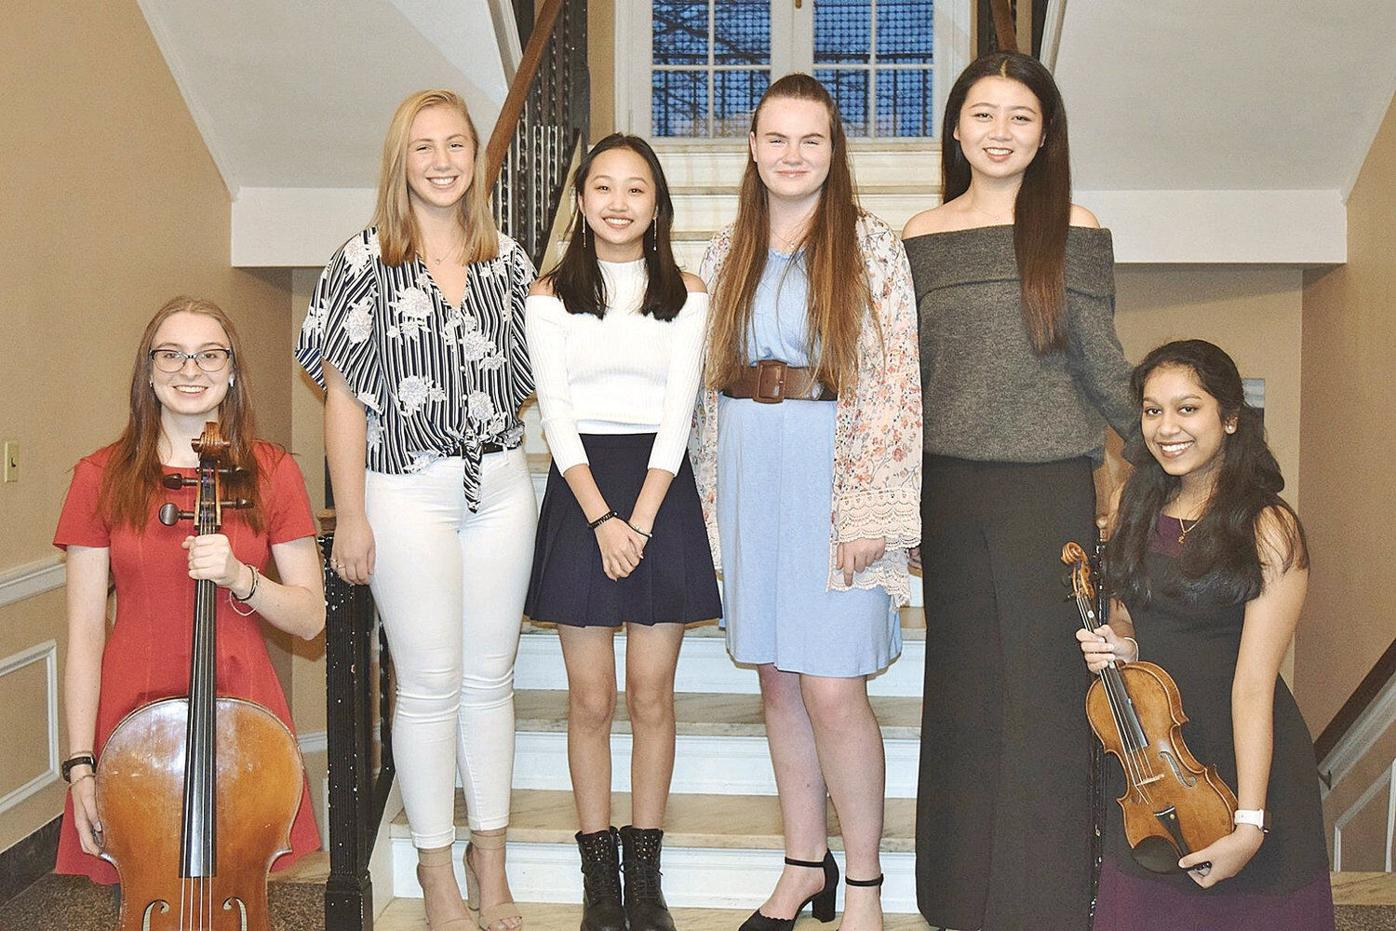 Make some noise for Berkshire music students